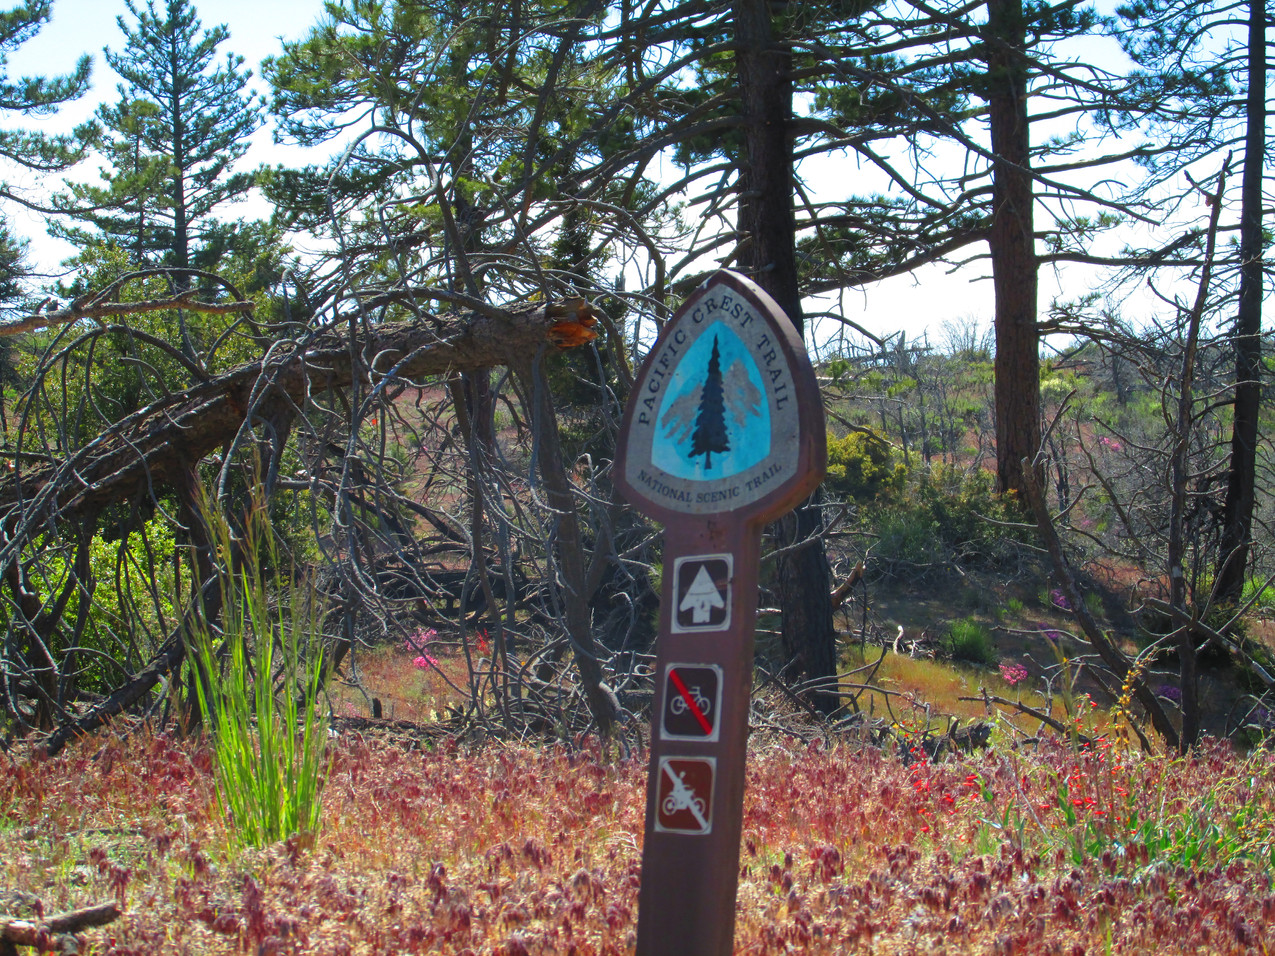 Another of the many different PCT trail markers.